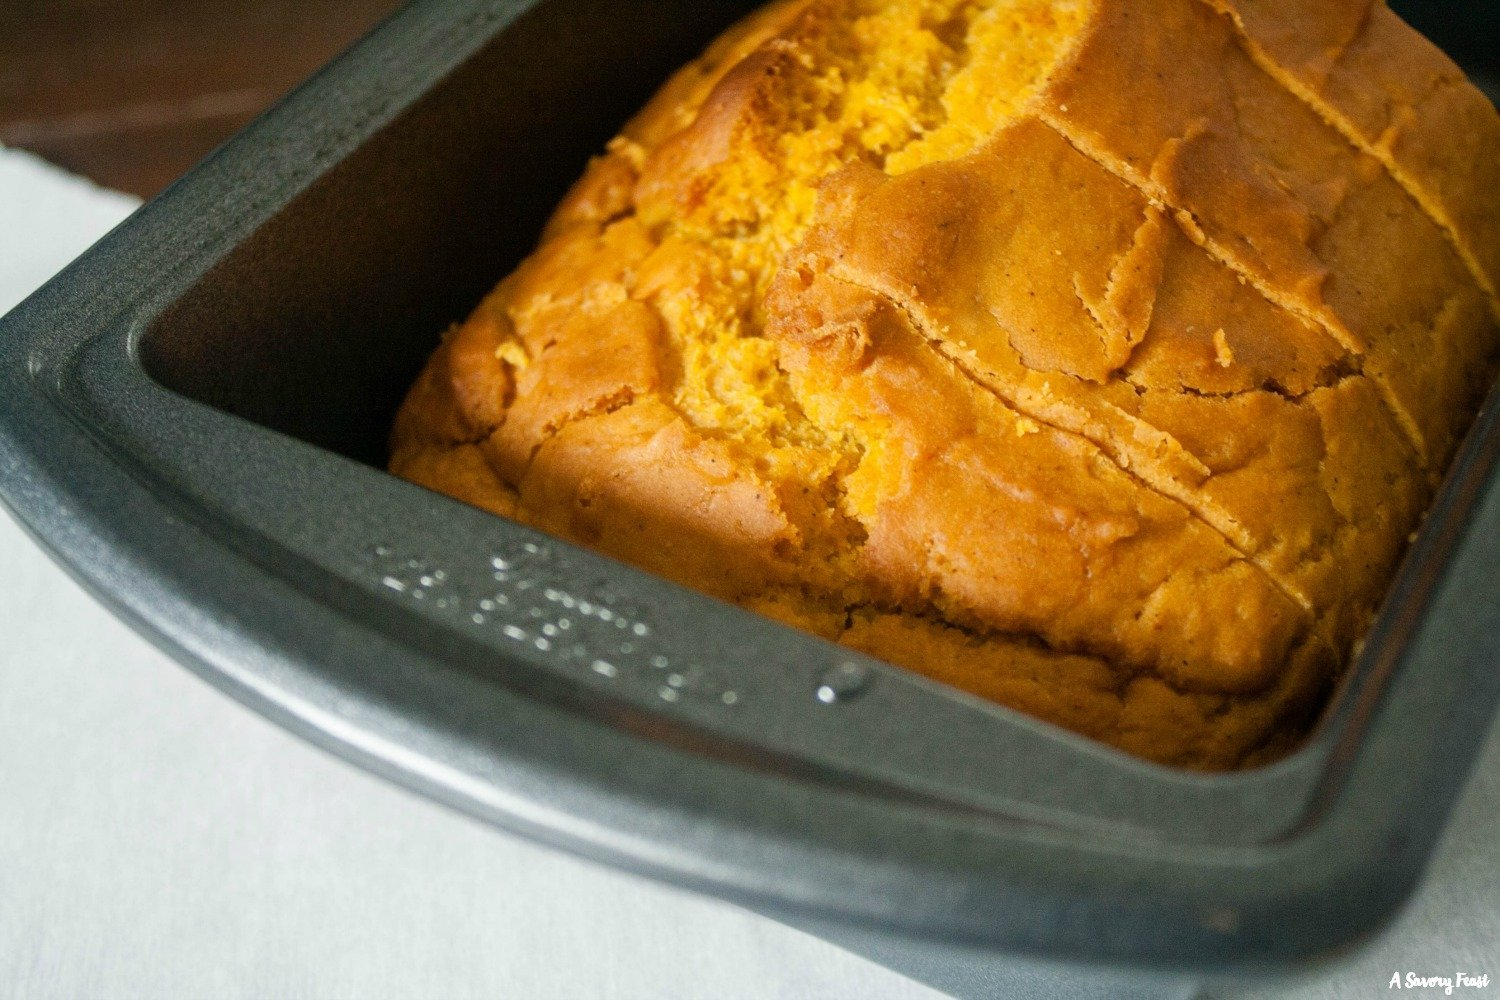 Enjoy a warm slice of this pumpkin bread with a cup of coffee!